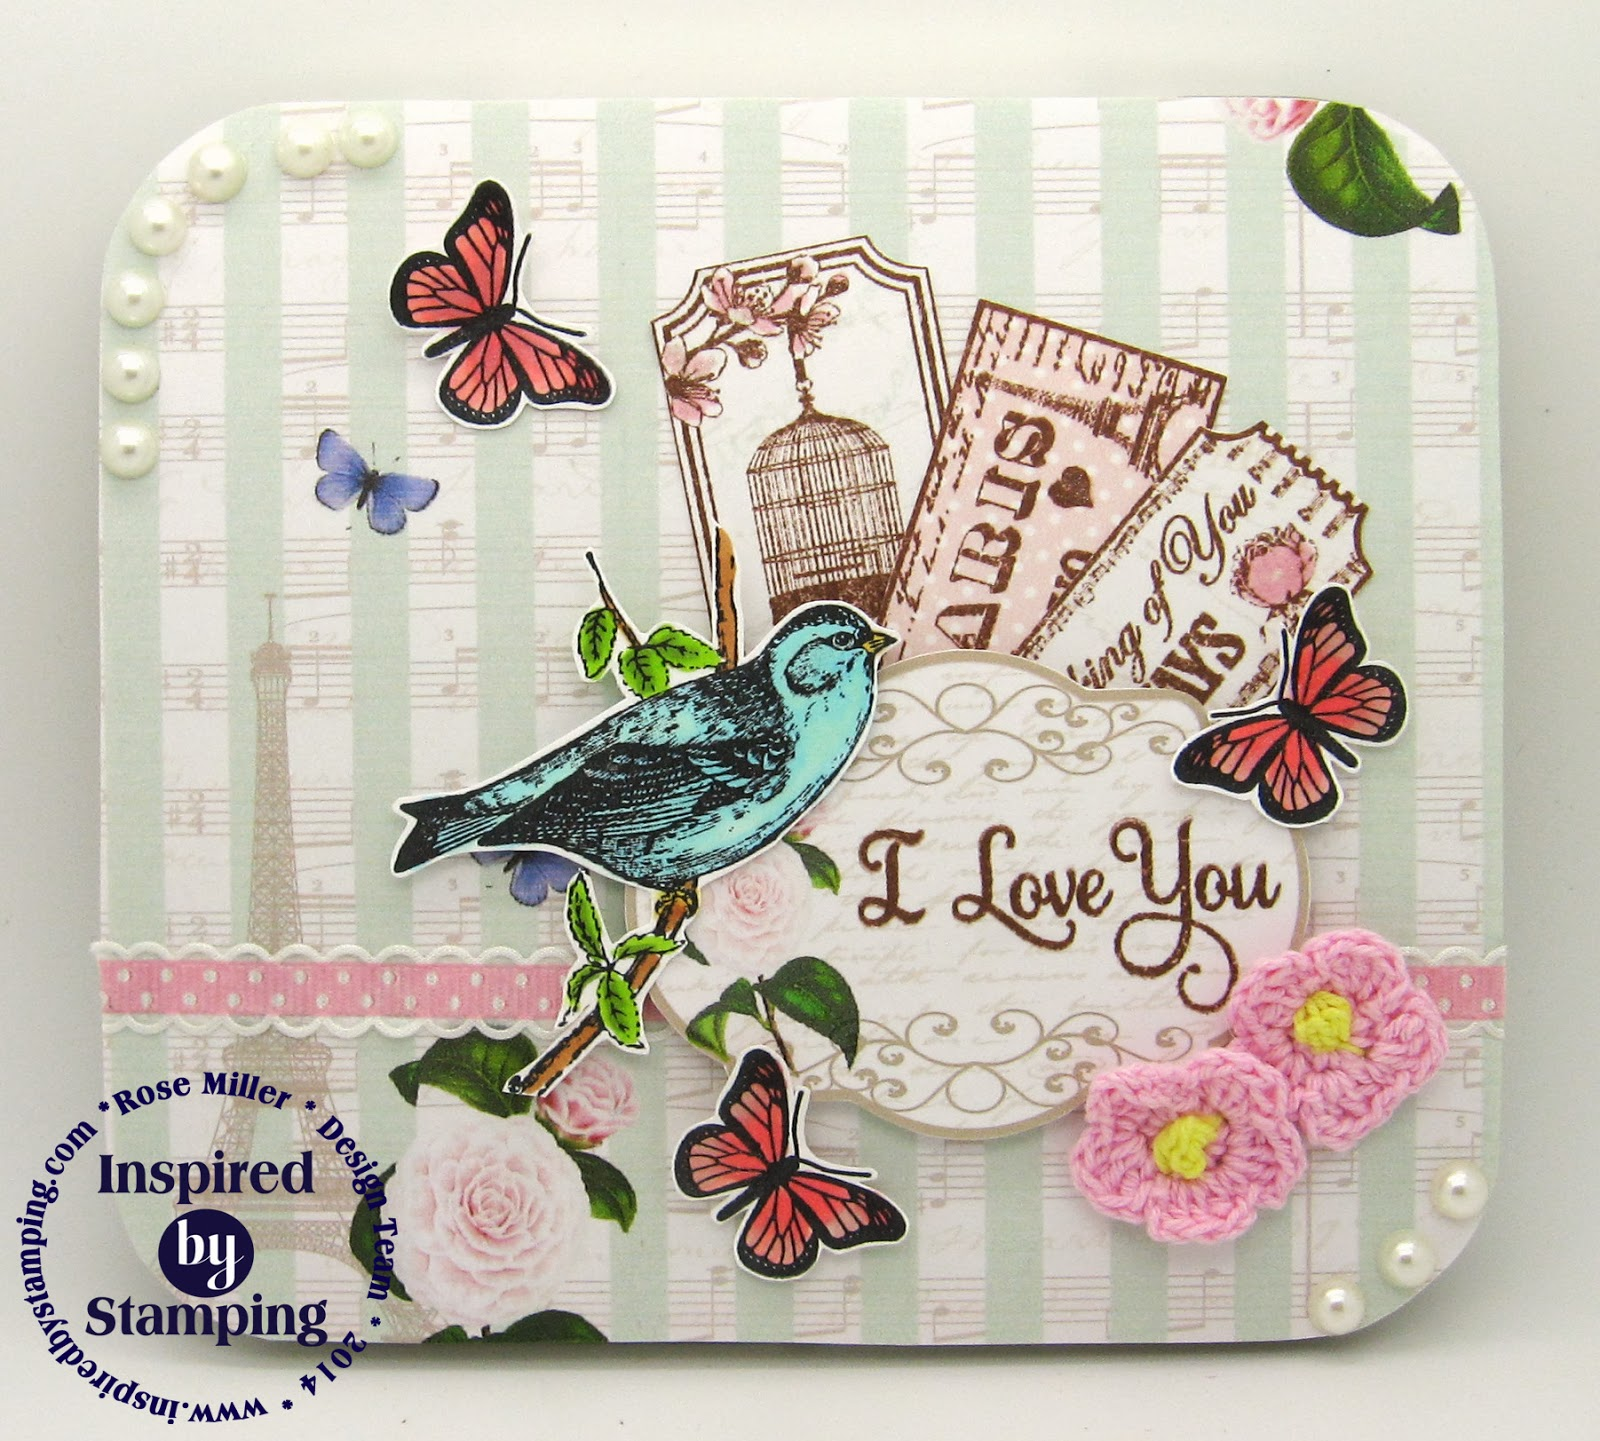 Inspired by Stamping - Rose Miller - Vintage Tickets Stamp Set - Altered Tin